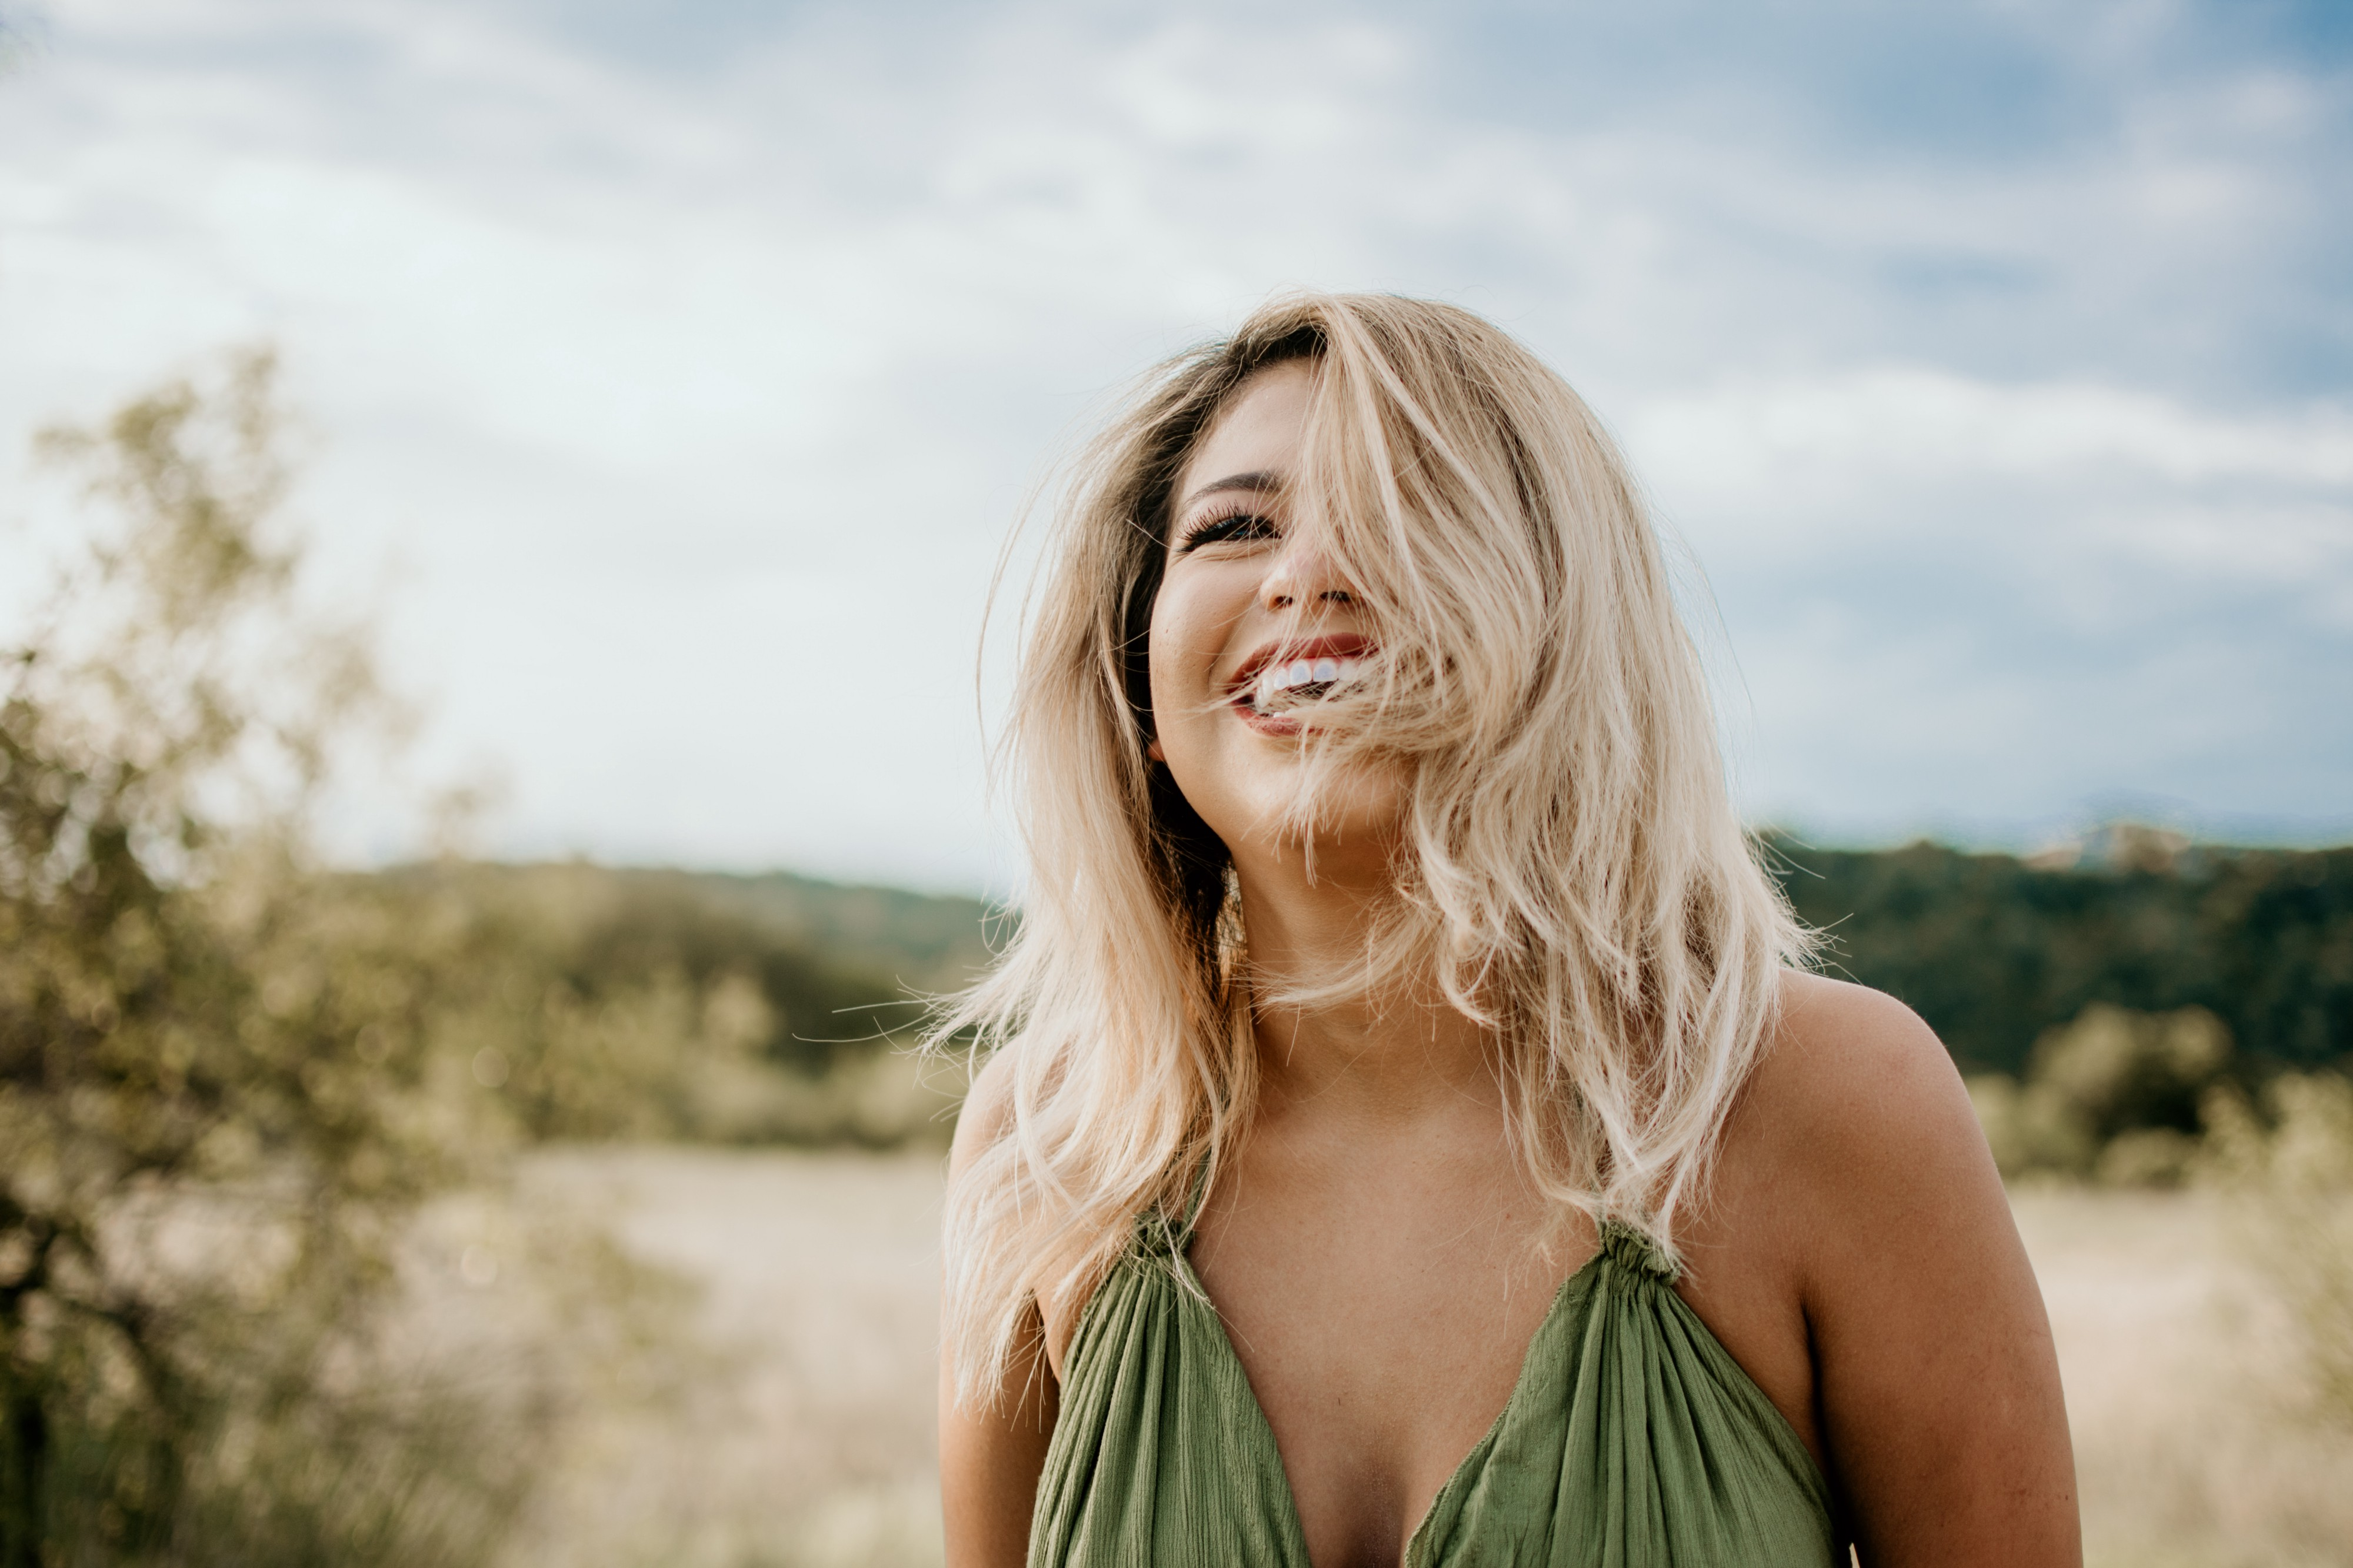 blonde woman laughing on the beach